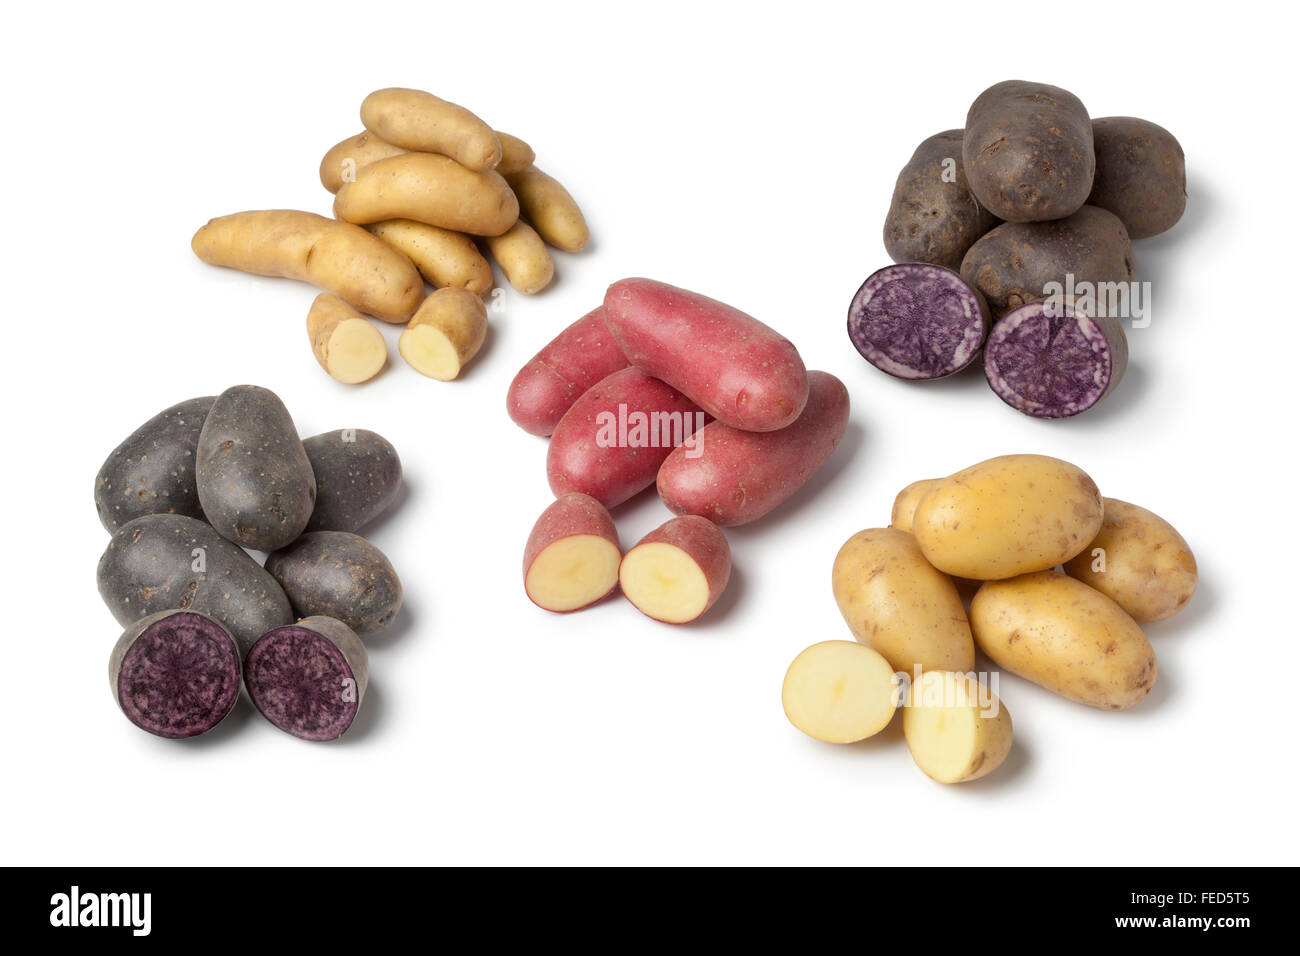 Variety of heirloom gourmet potatoes on white background Stock Photo